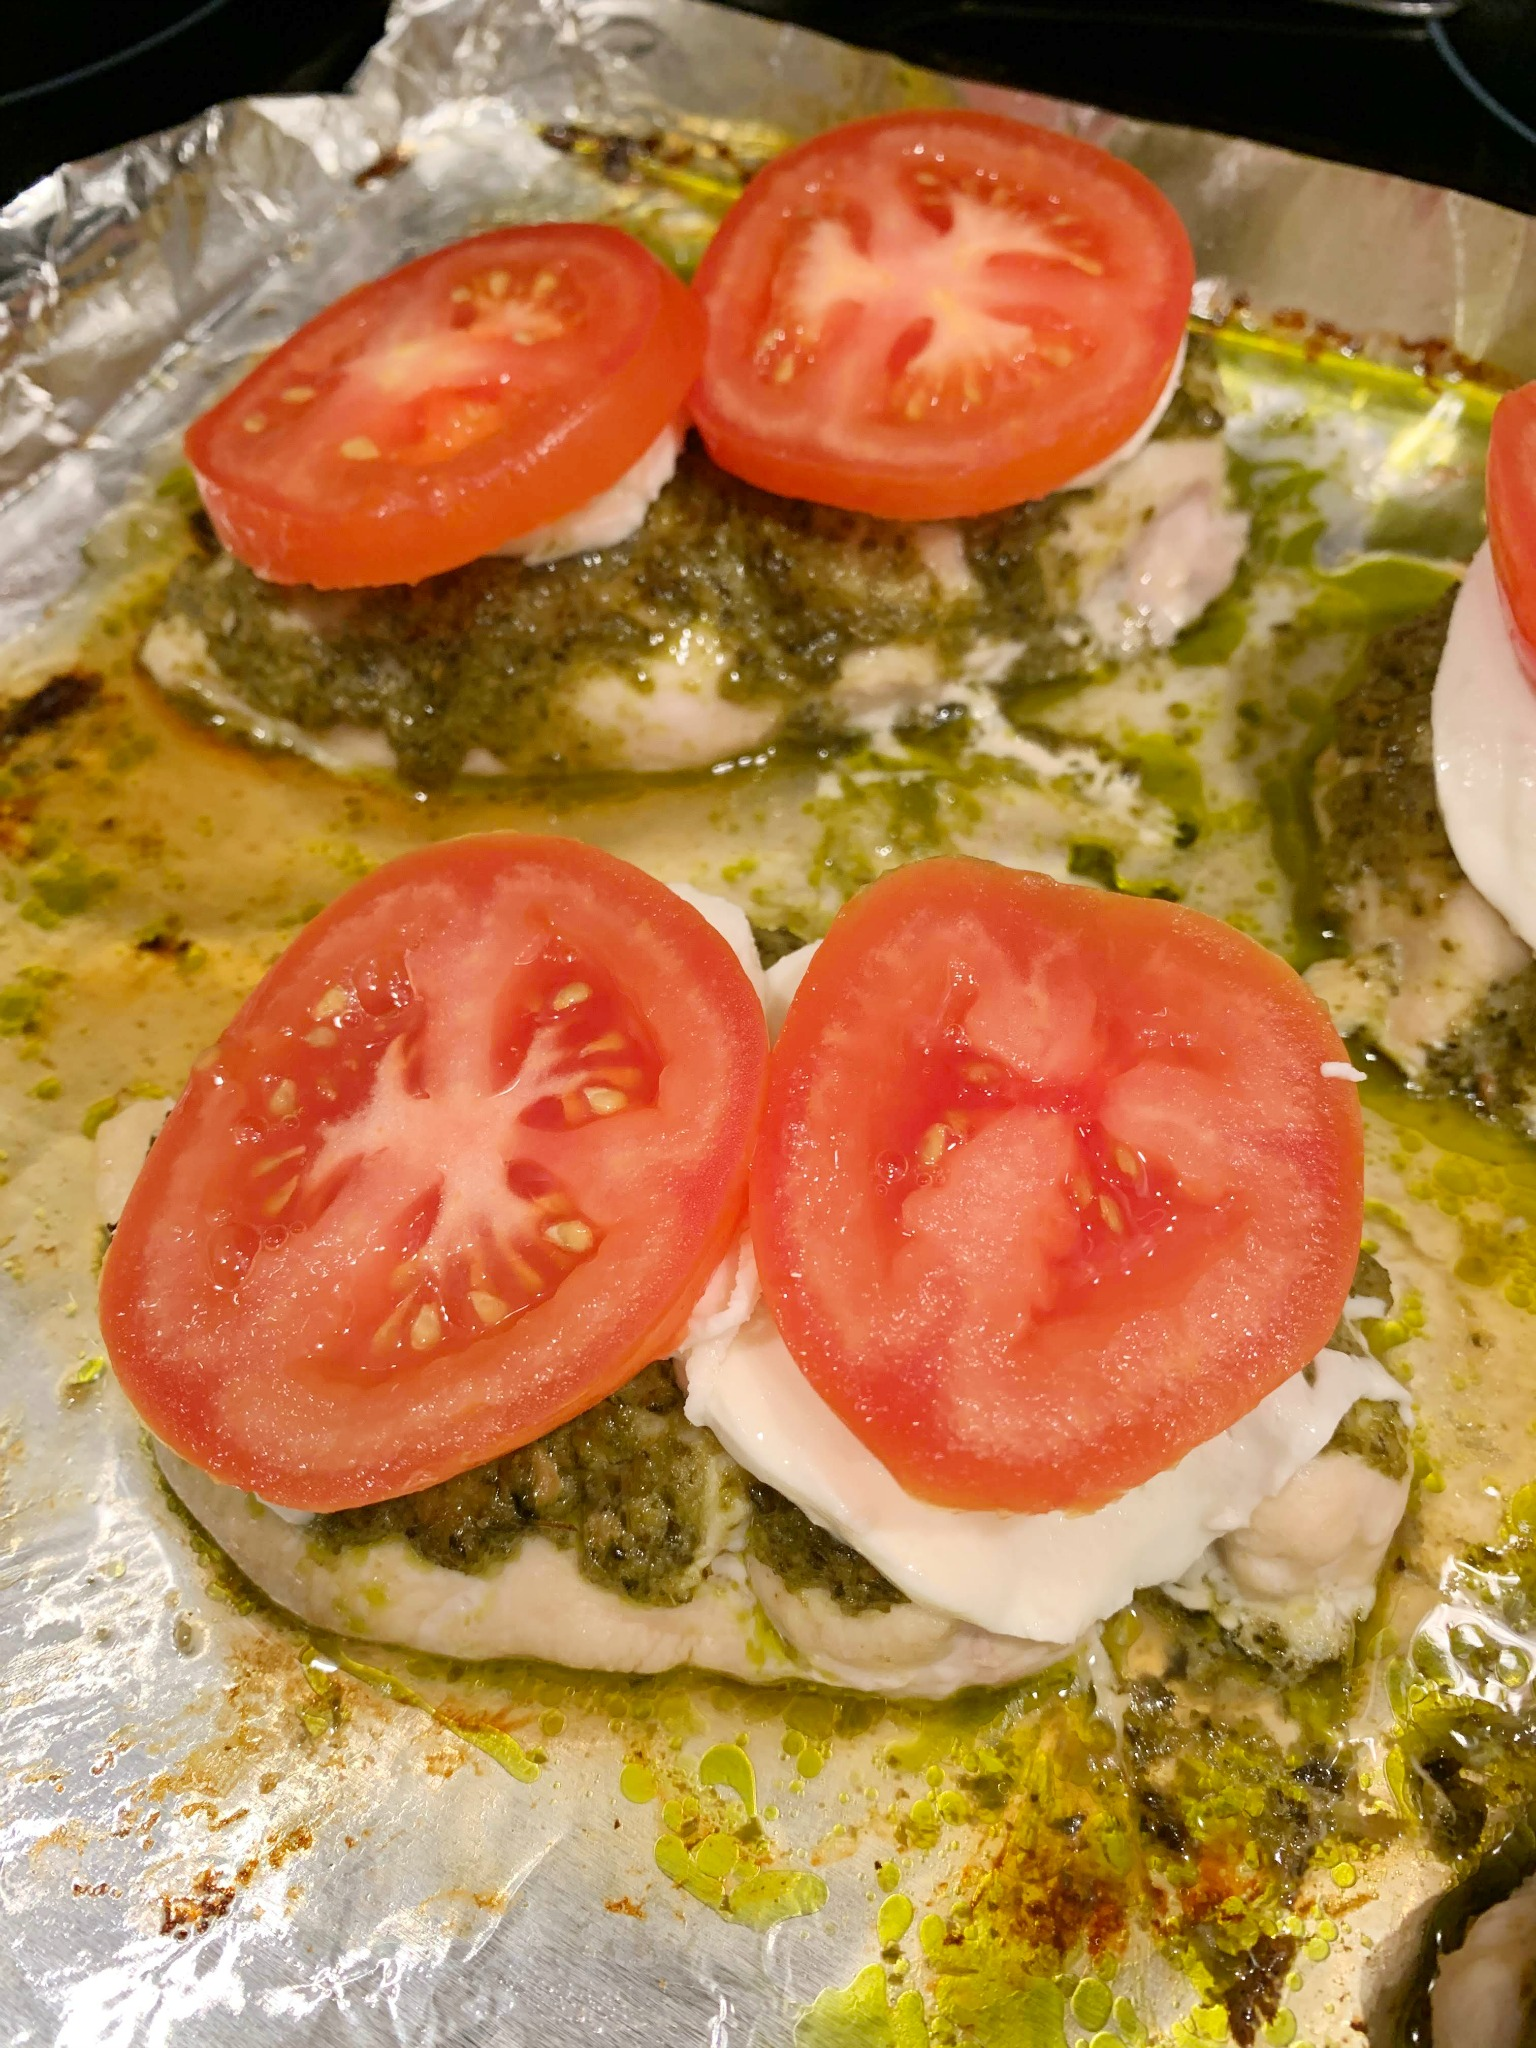 up close chicken breasts topped with pesto, mozzarella and tomato slices on a foil lined baking sheet